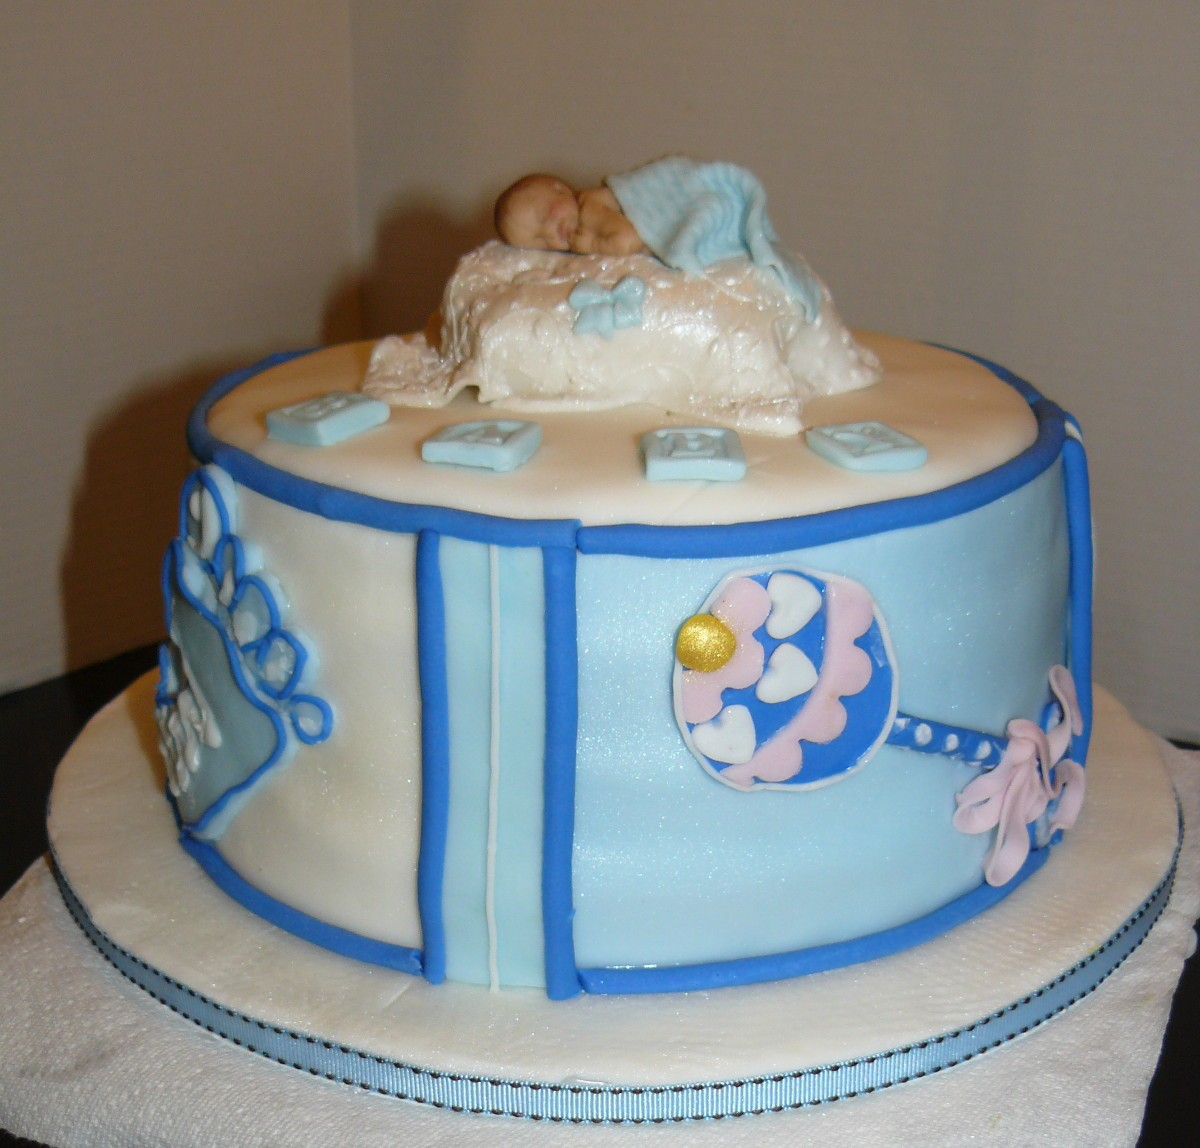 Boys Baby Shower Cake: 10 Gorgeous Cake Designs For Baby Shower